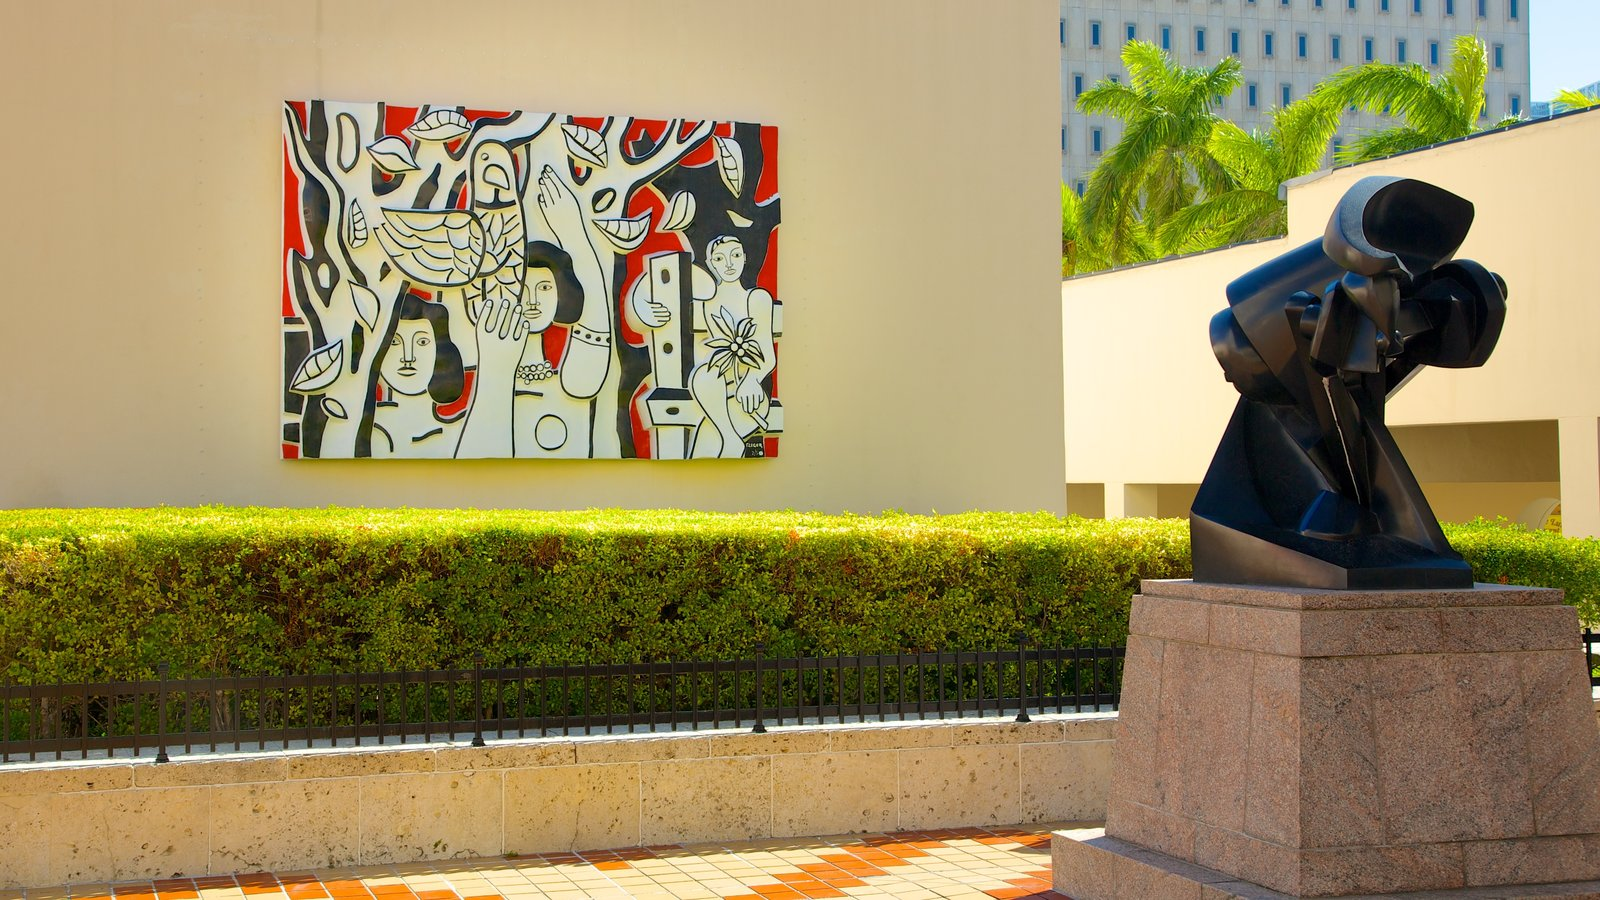 Attraction Pictures: View Images of Pérez Art Museum Miami